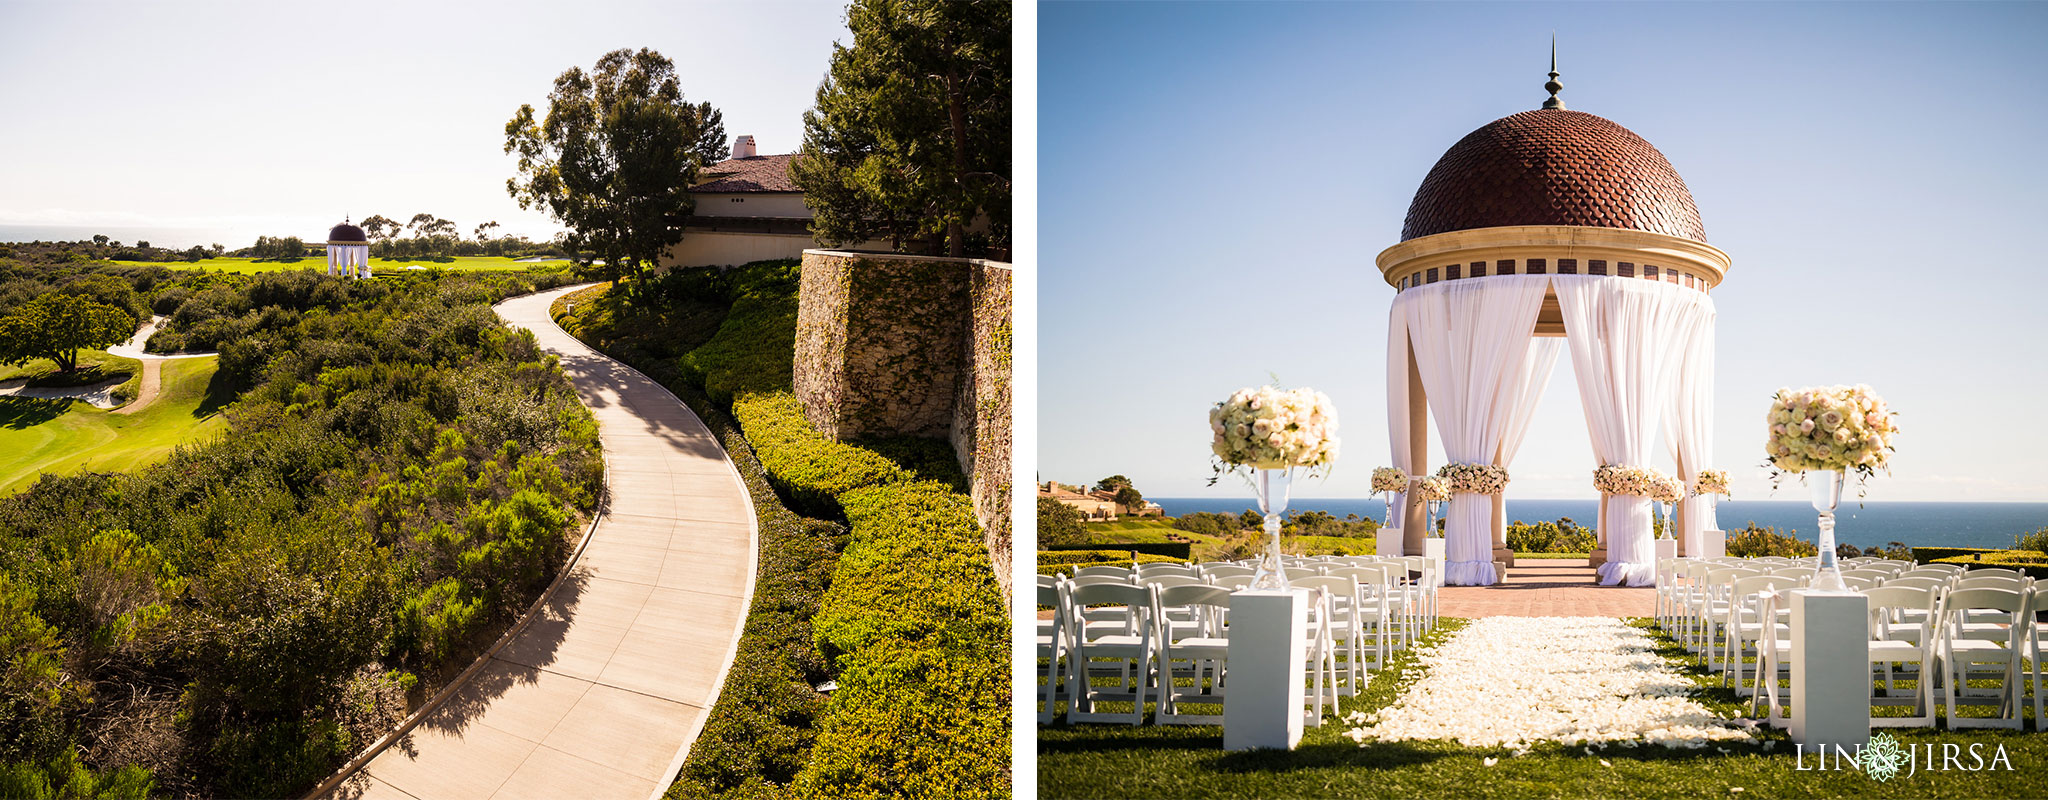 12 pelican hill resort orange county wedding photography